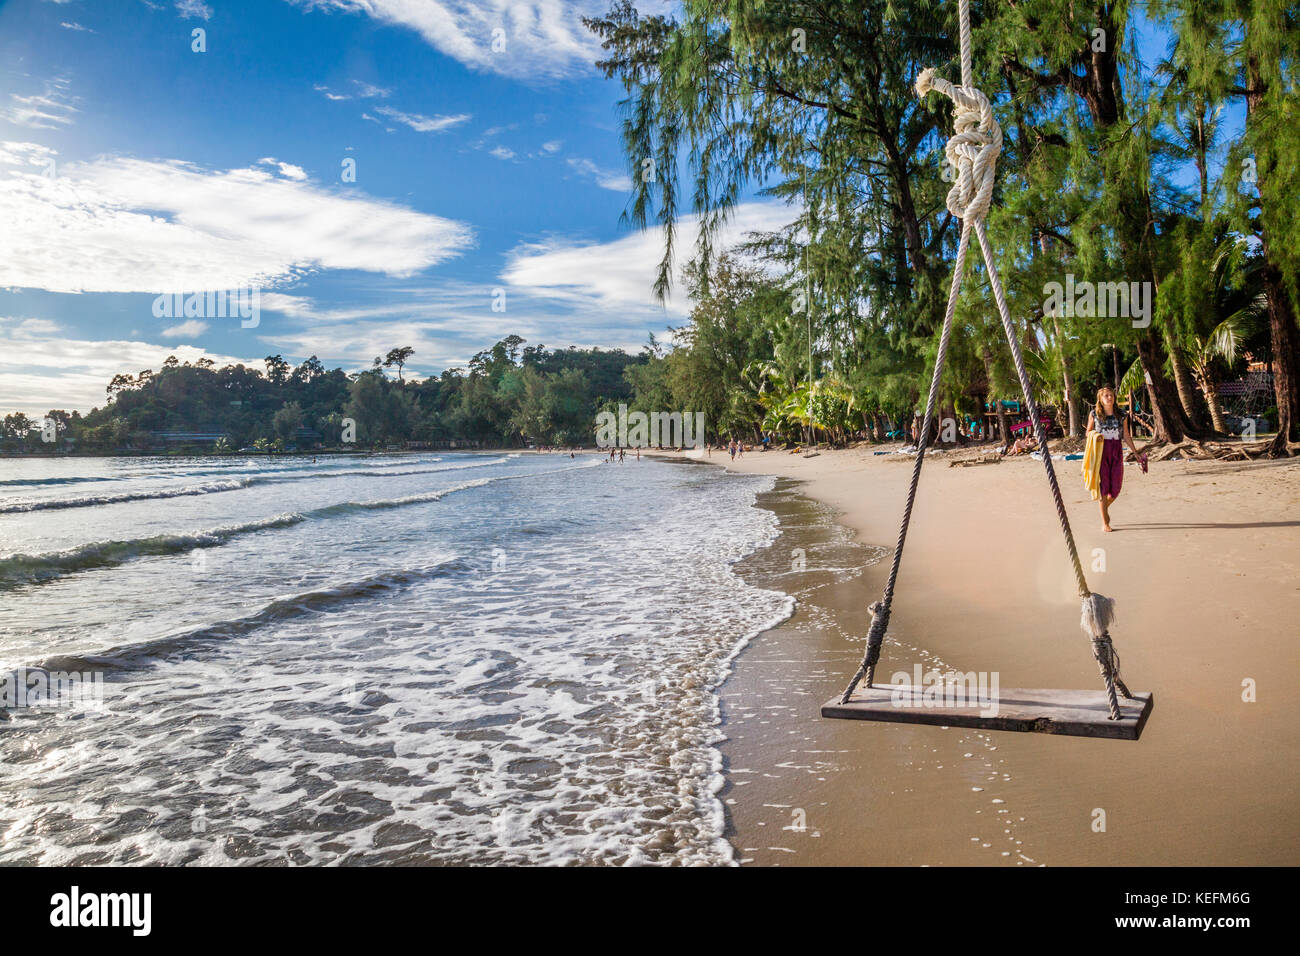 Thailand, Trat Province, Koh Chang Island in the Gulf of Thailand, beach swing Ao Klong Phrao Beach Stock Photo